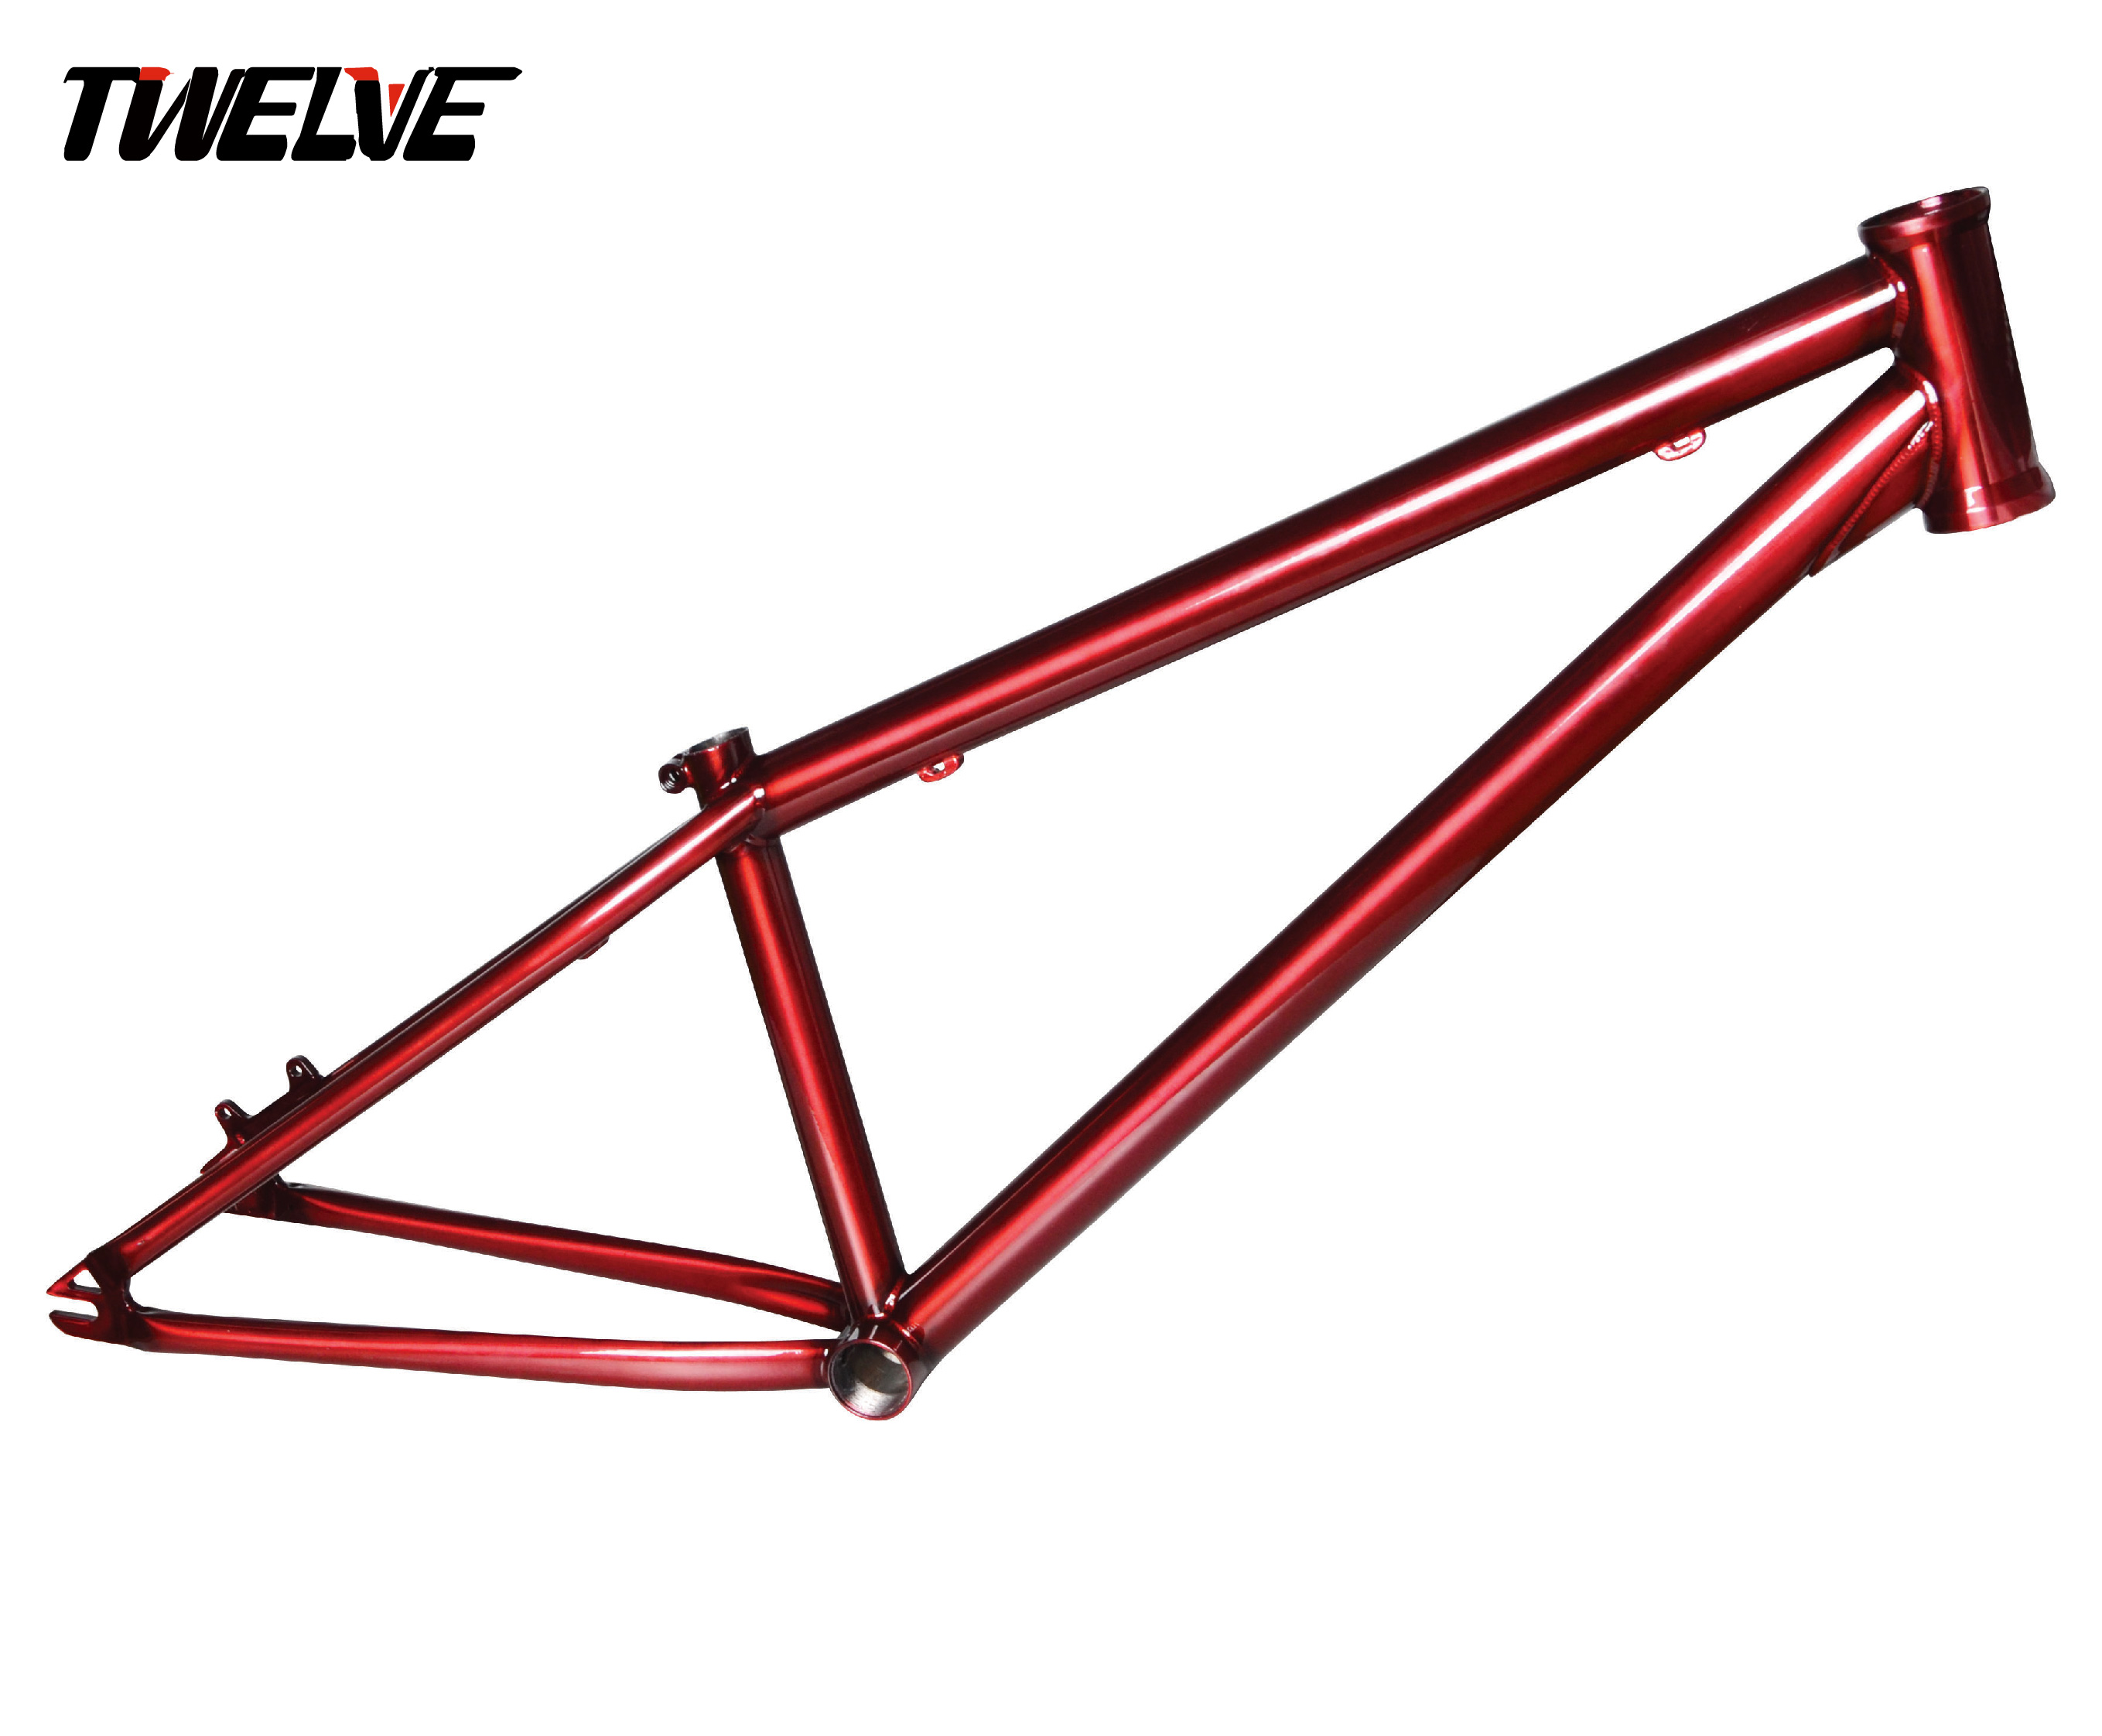 26 inch cr mo 4130 chromoly dirt jump frame buy dirt jump bike cycle frame cr mo 4130 customized size and specifications product on alibaba com